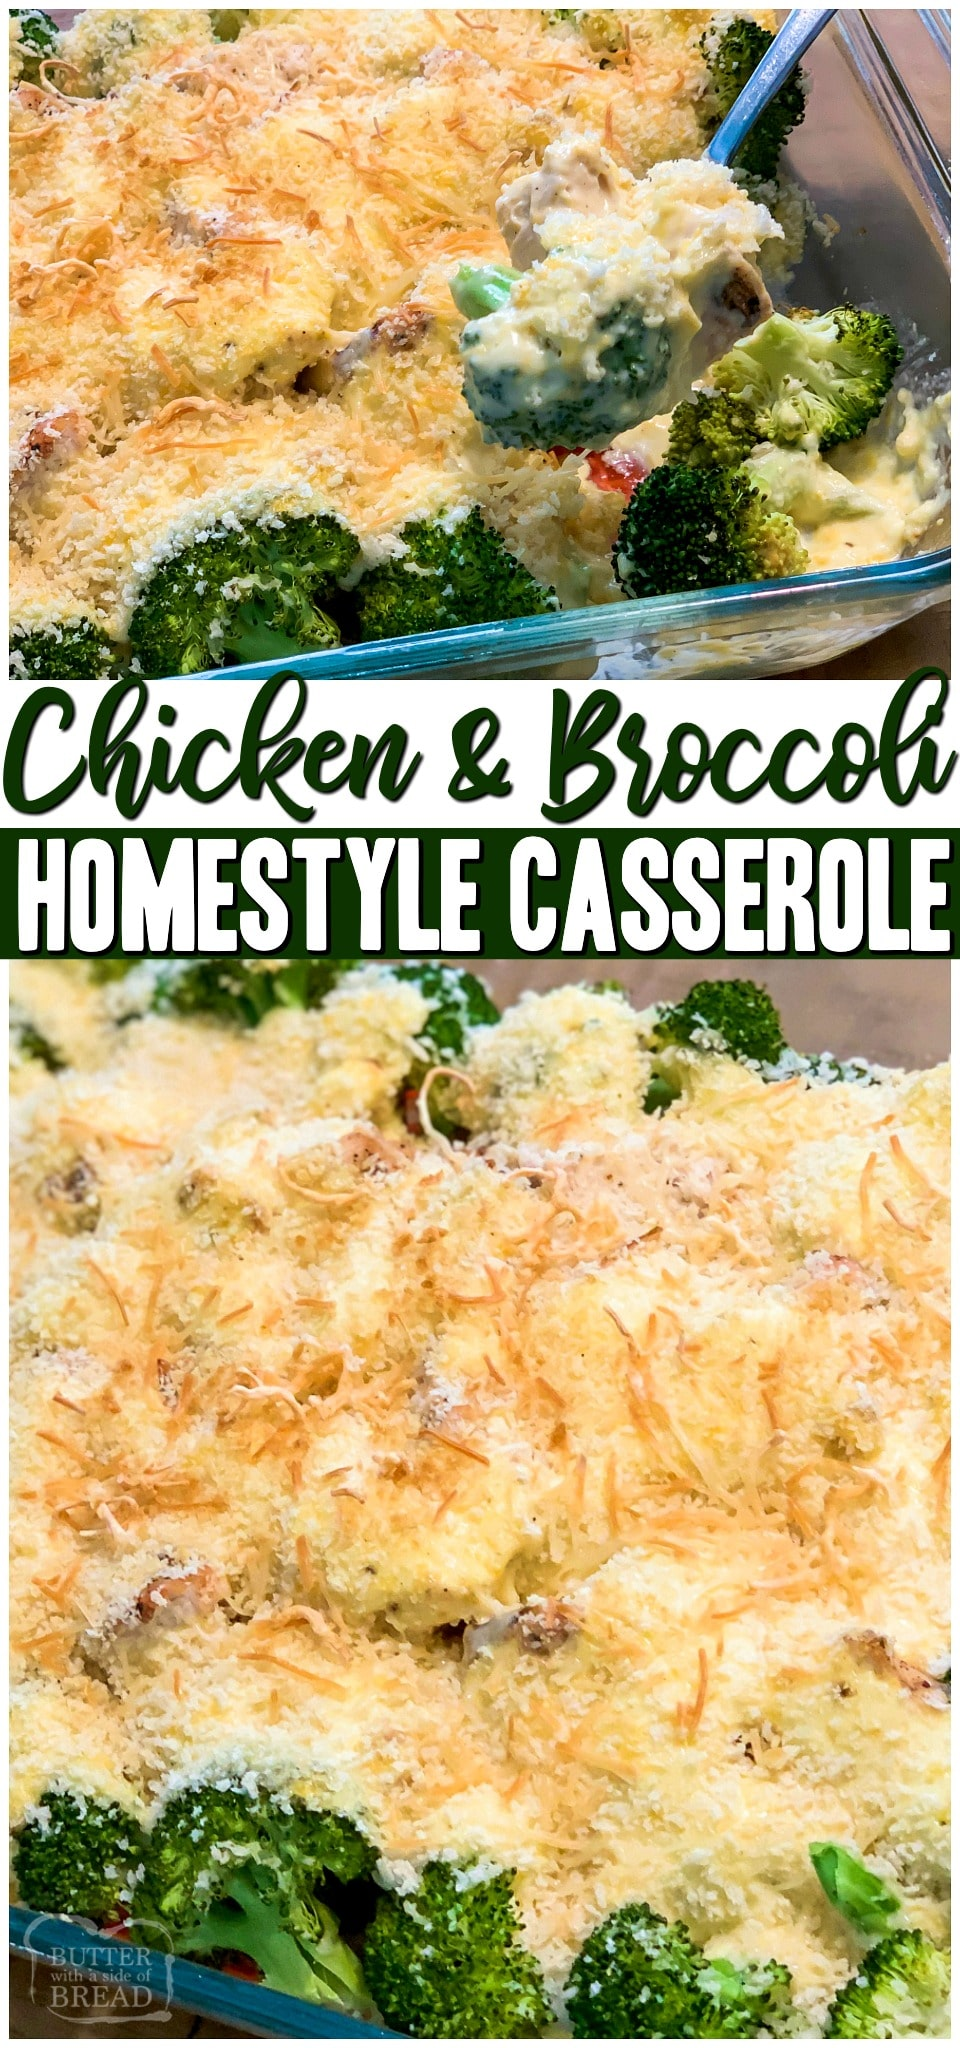 Chicken and Broccoli Casserole~ we're sharing our family recipe that's been passed down generations! Creamy cheese sauce mixed with delicious tender chicken and broccoli topped with buttery bread crumbs make it the perfect comfort food! #chicken #broccoli #casserole #easyrecipe #dinner #chickendinner from BUTTER WITH A SIDE OF BREAD